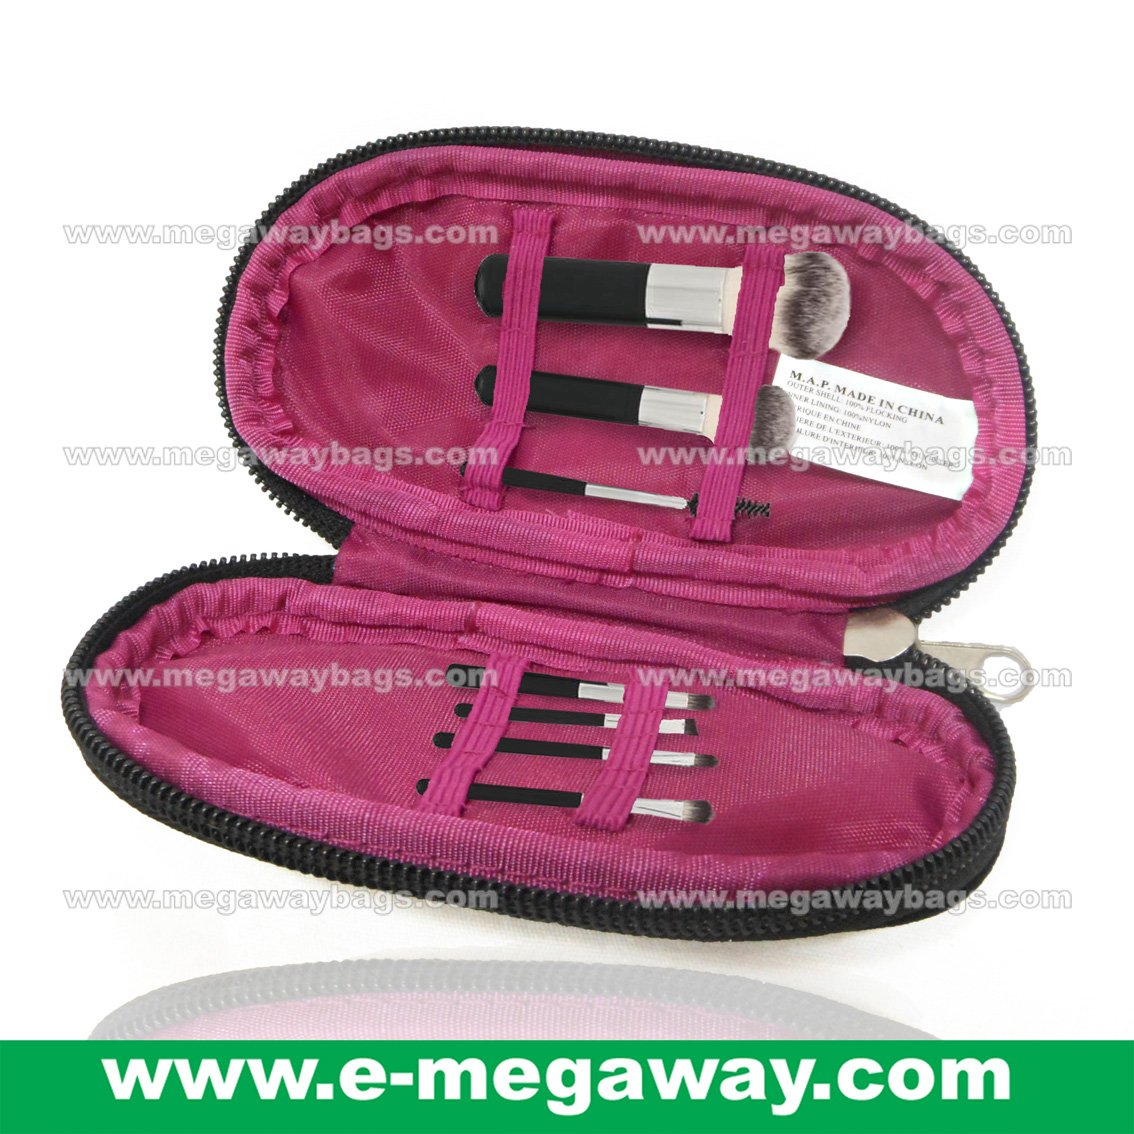 Travel Toiletry Amenity Organizer Cosmetic Make Up Bag Tools Beauty MegawayBags #CC-1060